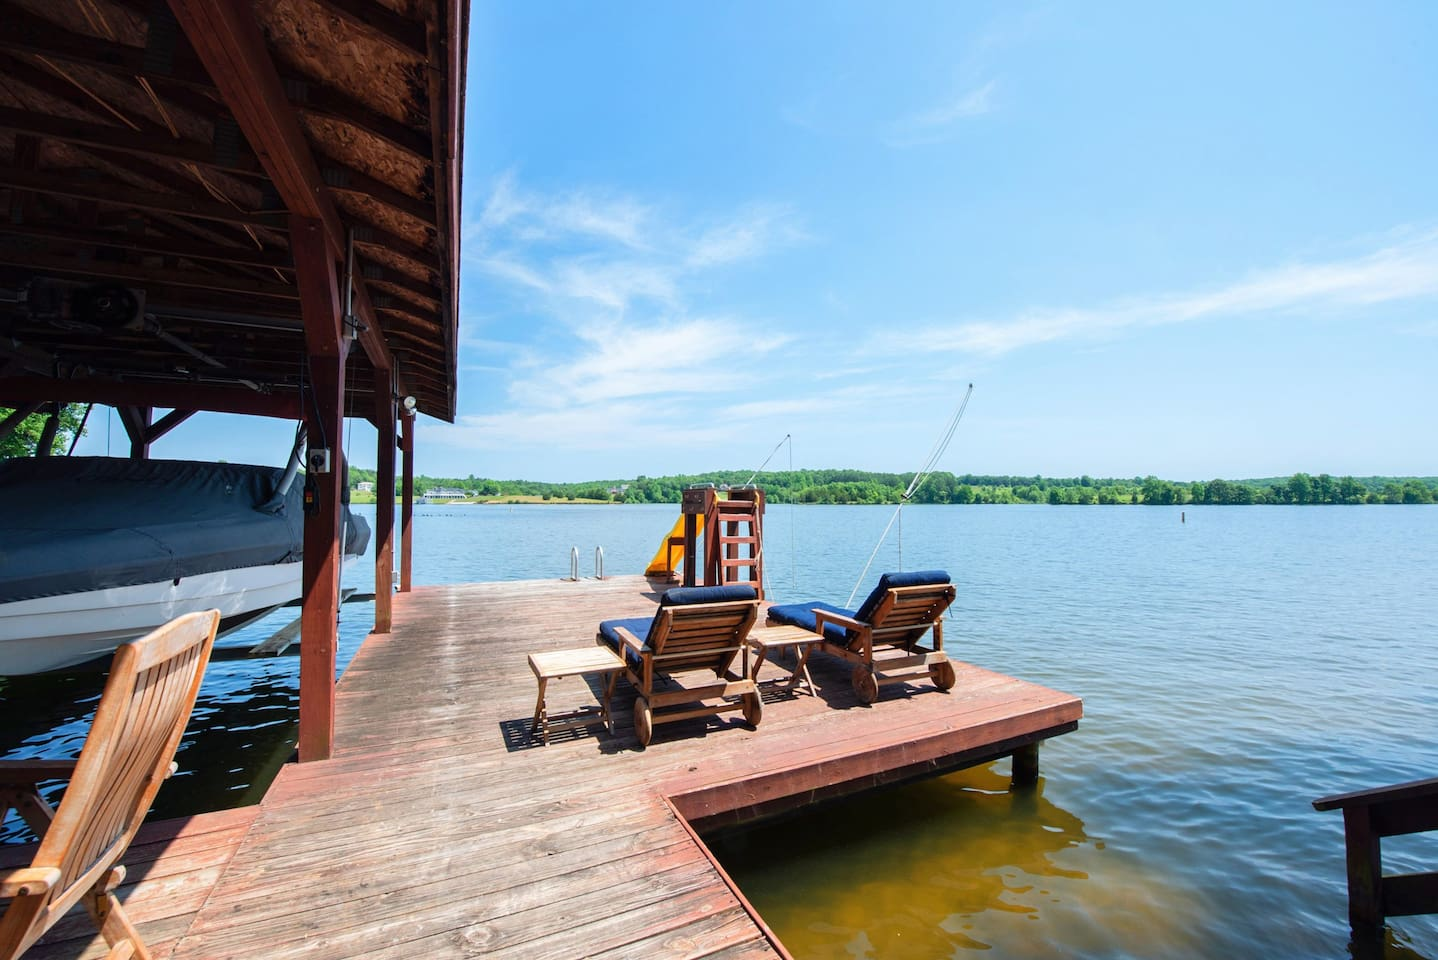 Room for your boat or jet skis on this deep water dock.  'No wake' area perfect for swimming or fishing.